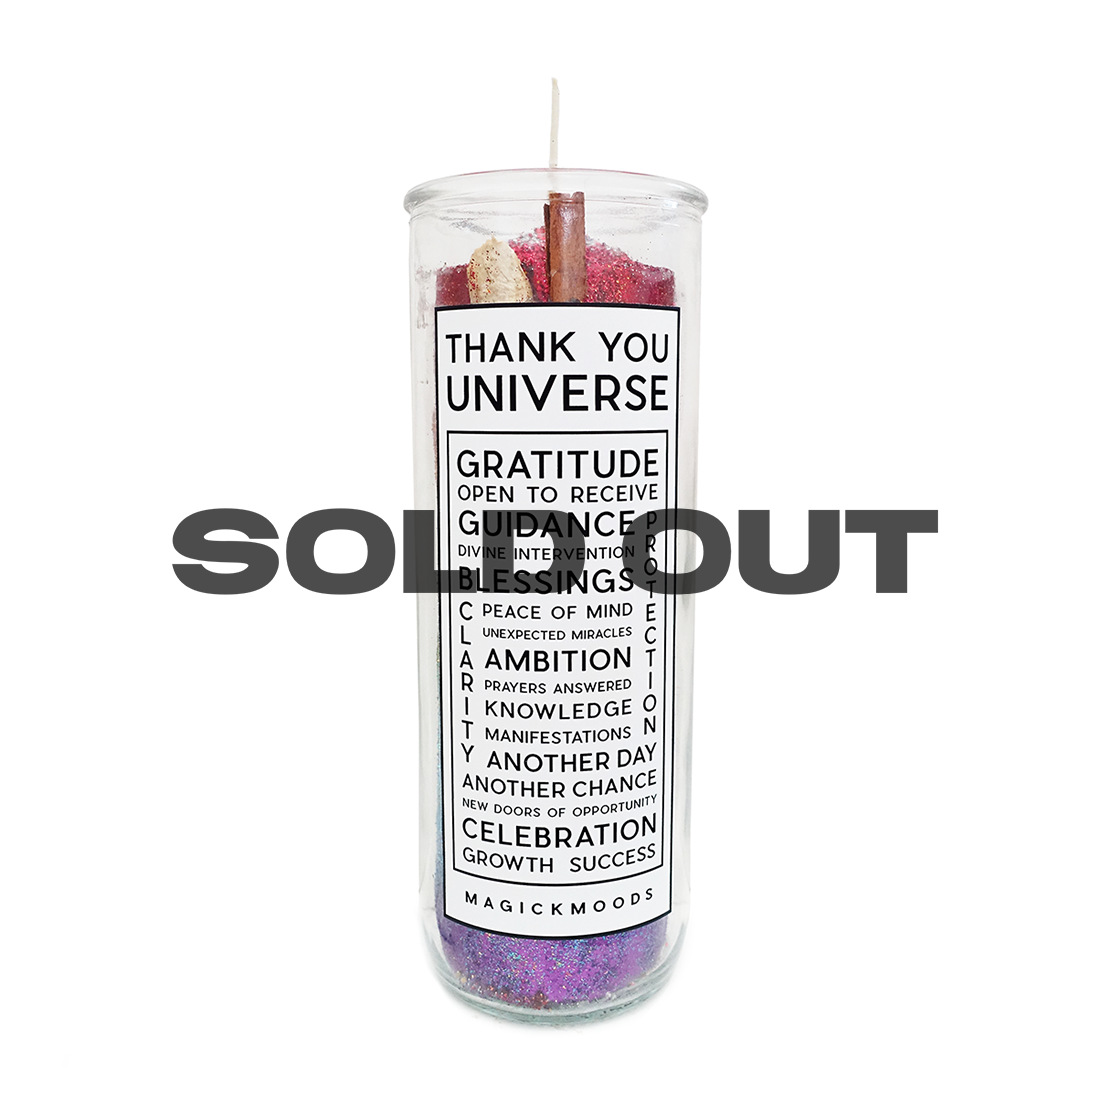 Thank You Universe 7-Day Meditation Candle - PREORDER - Ships by 12/15